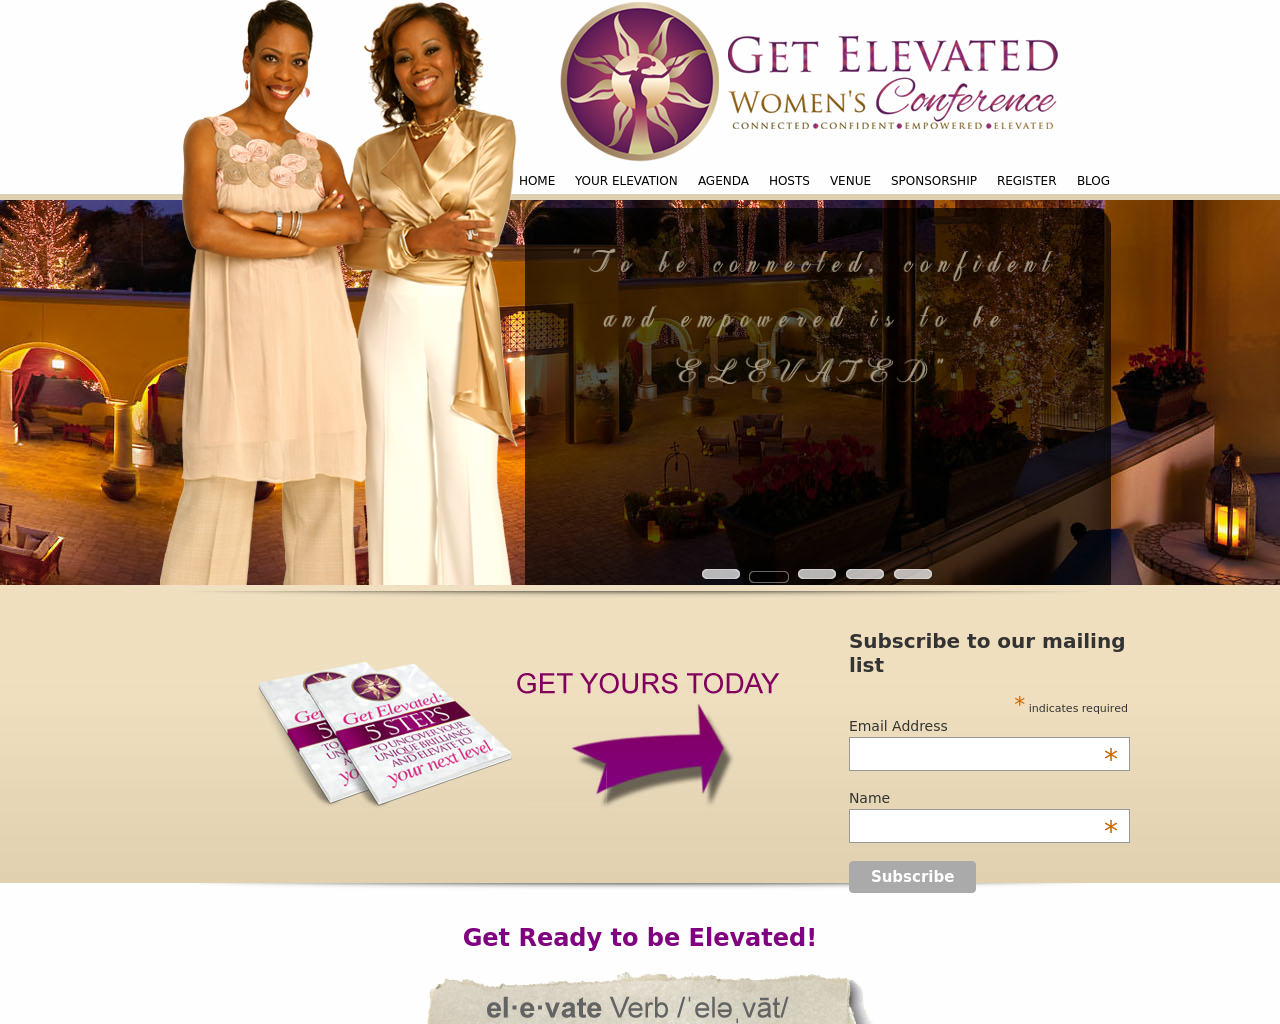 Get-Elevated-Womens-Conference-Advertising-Reviews-Pricing